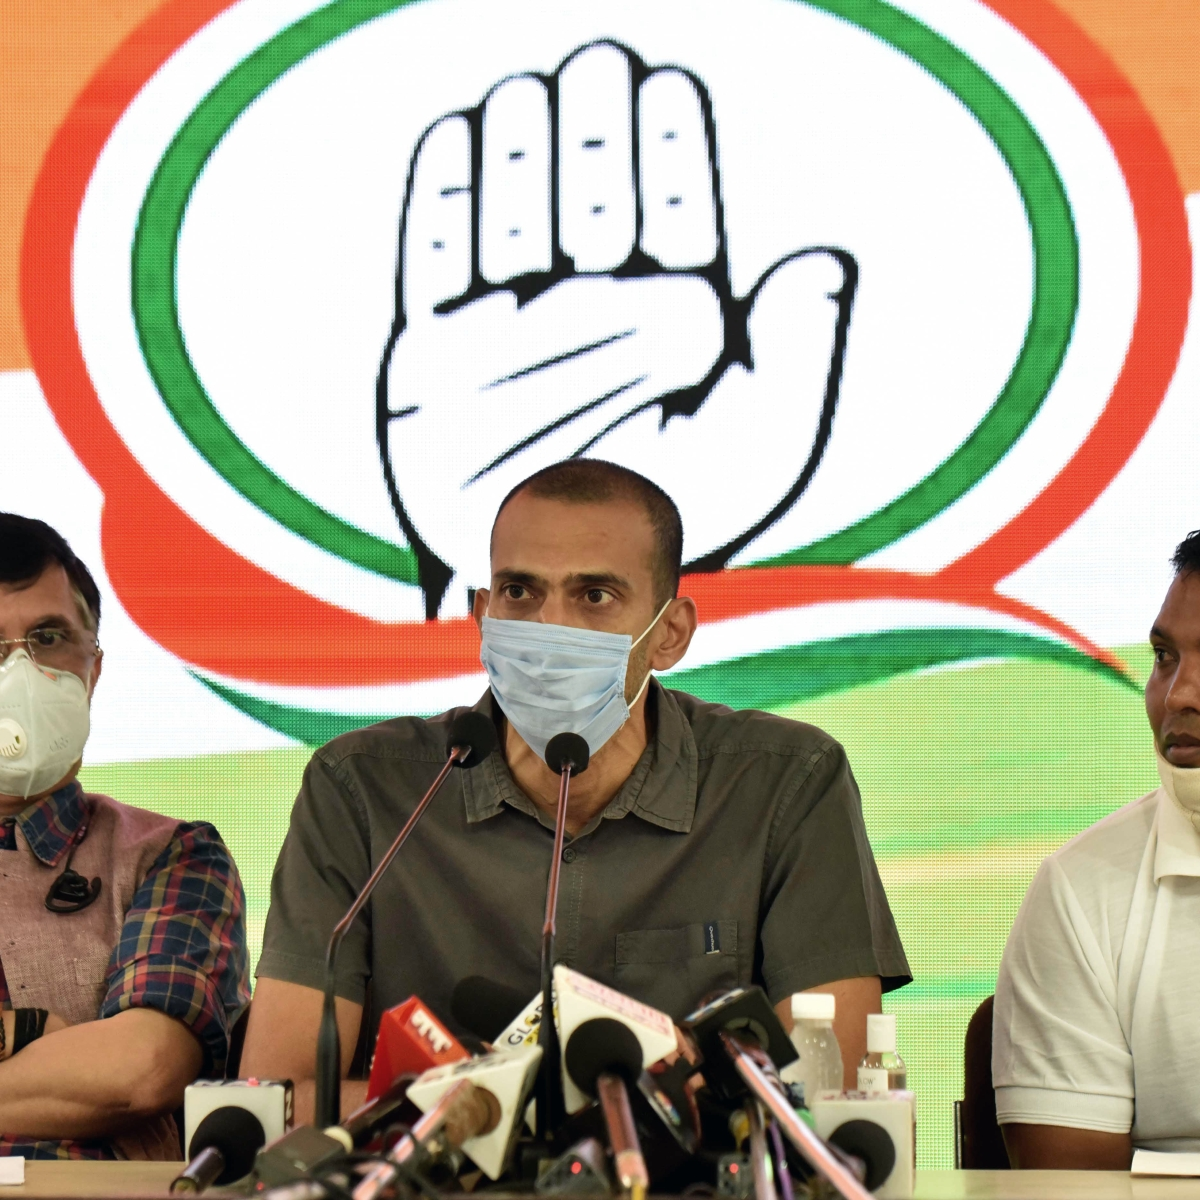 BJP, Facebook's close relationship have been revealed: Congress